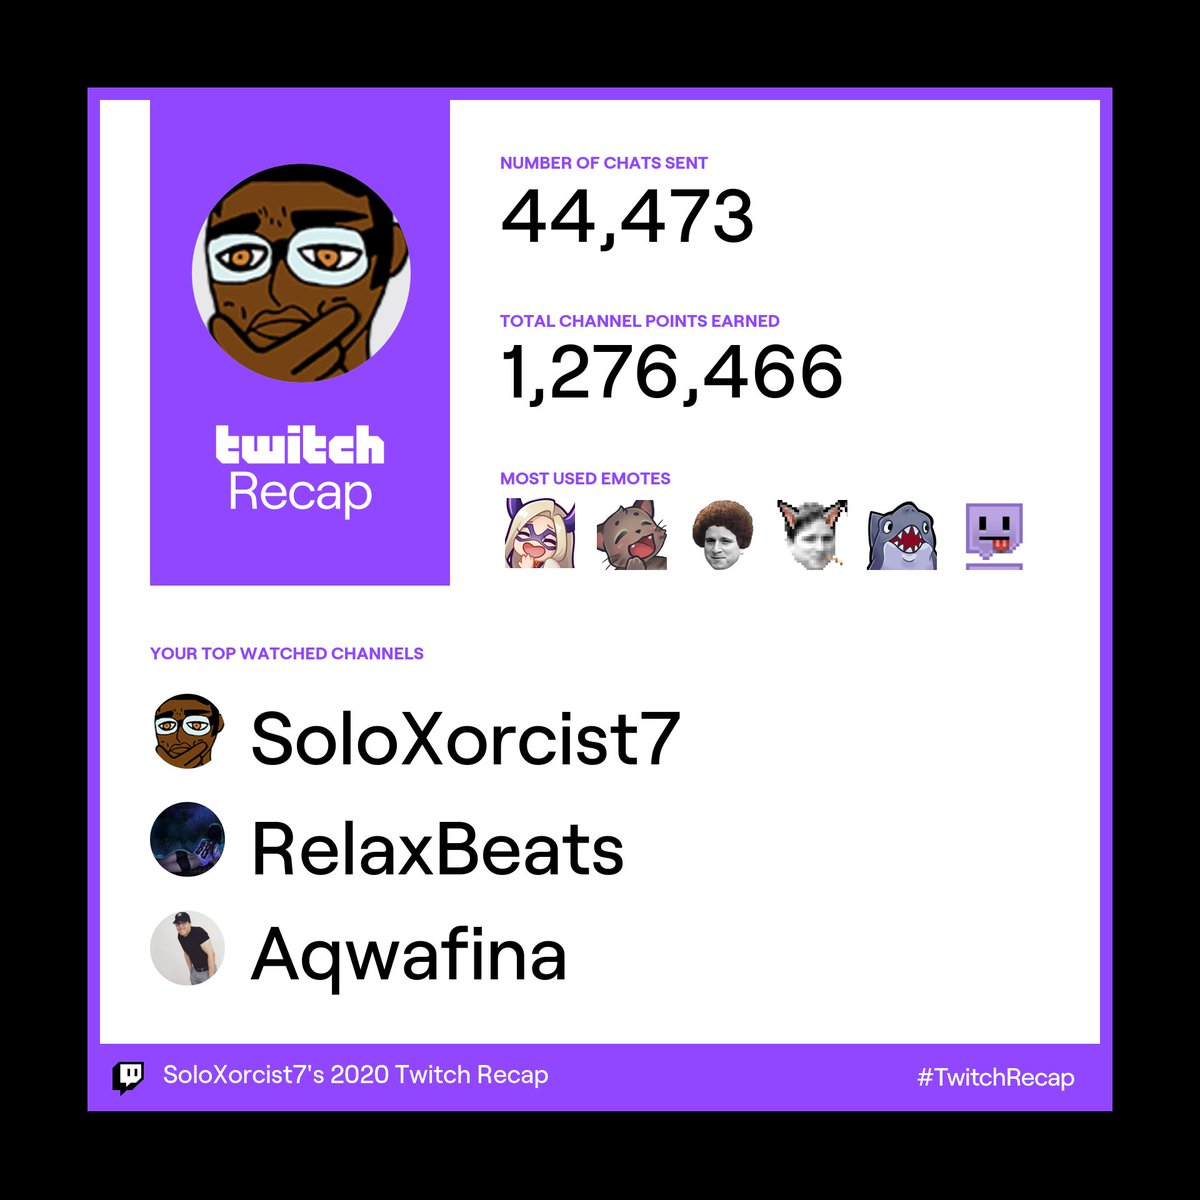 #TwitchRecap   i'm my number one viewer  props to music, @AqwafinaTV , @Miistymiisty   had other details on like subs and what I watched the most as well but this is what you can download from the email